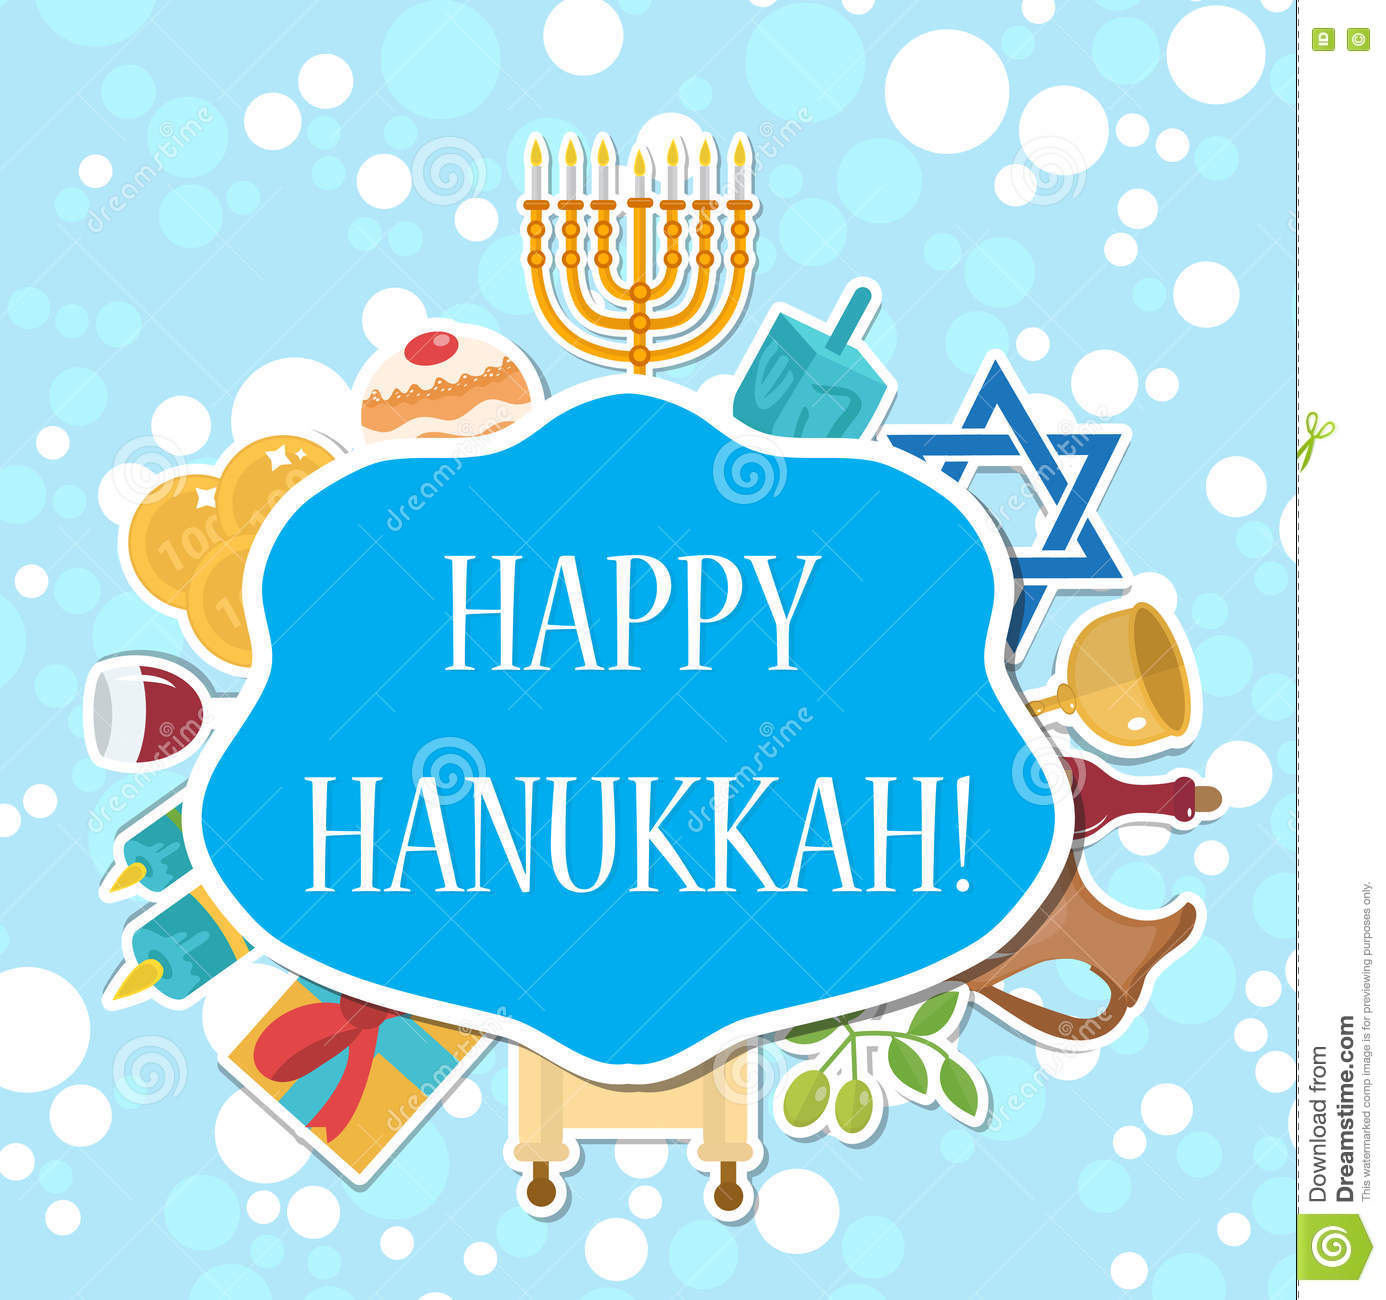 Happy Hanukkah greeting card, invitation, poster. Hanukkah Jewish Festival of Lights, Feast of Dedication. Hanukkah Greeting Card